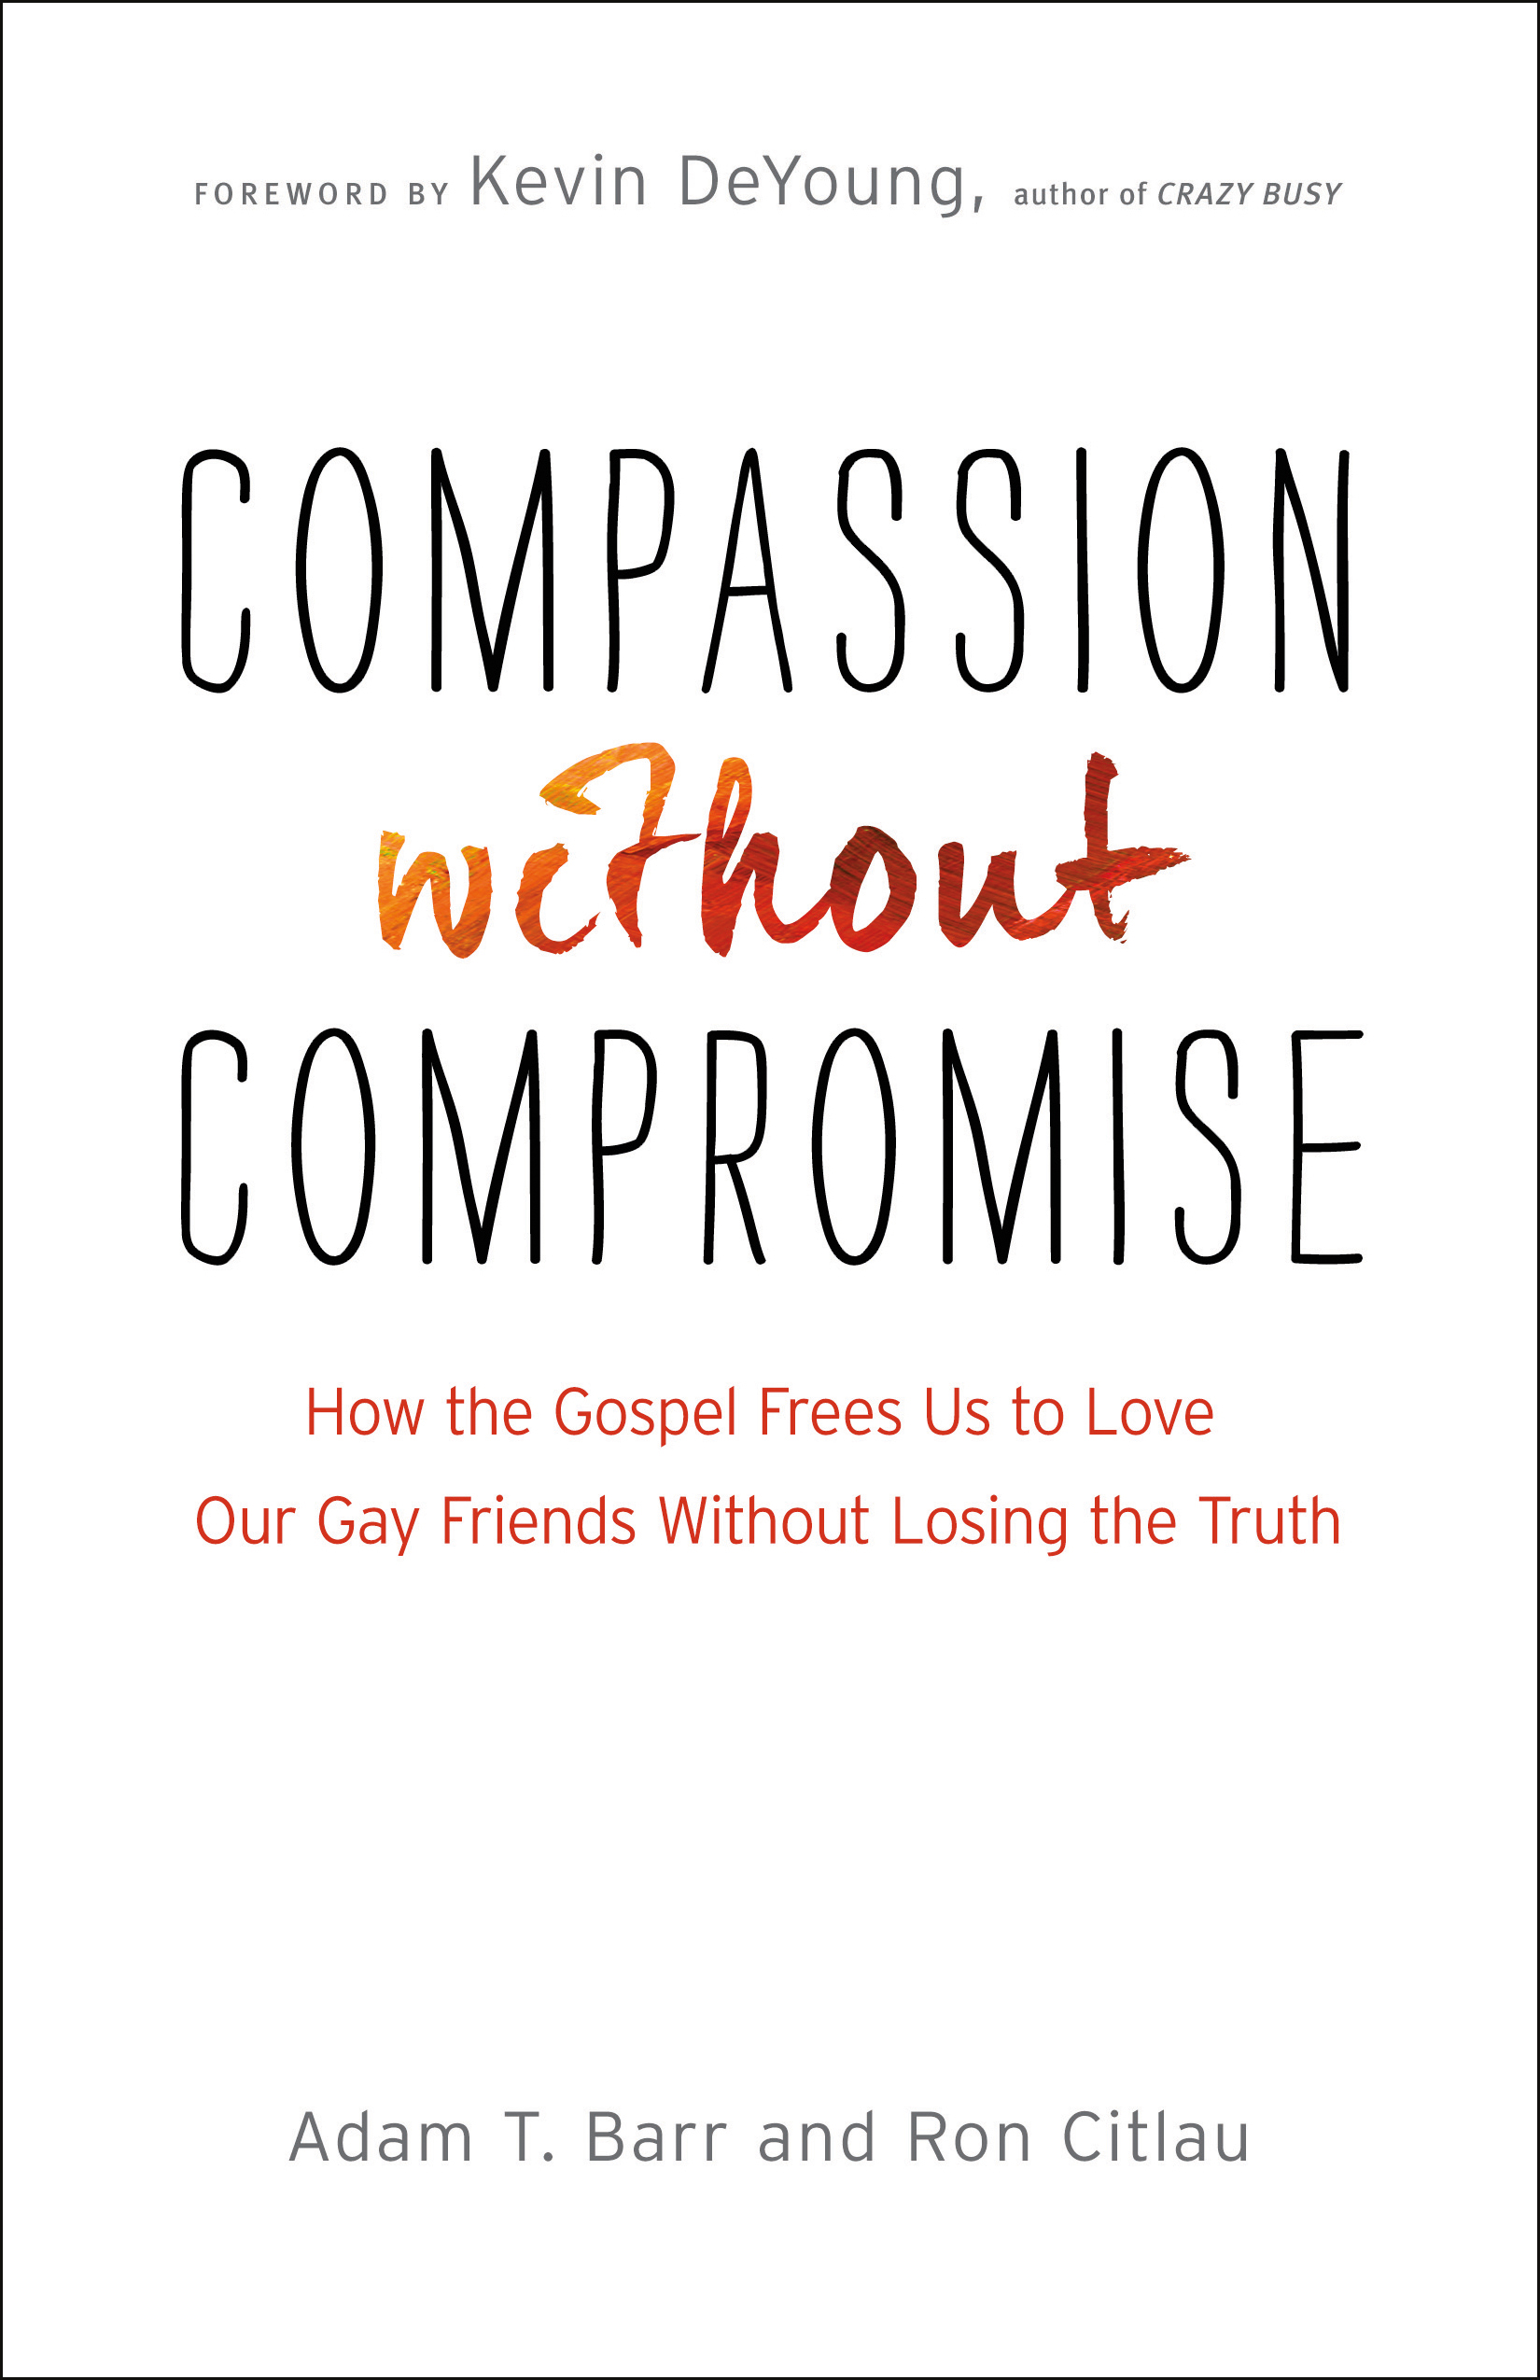 compassion out compromise